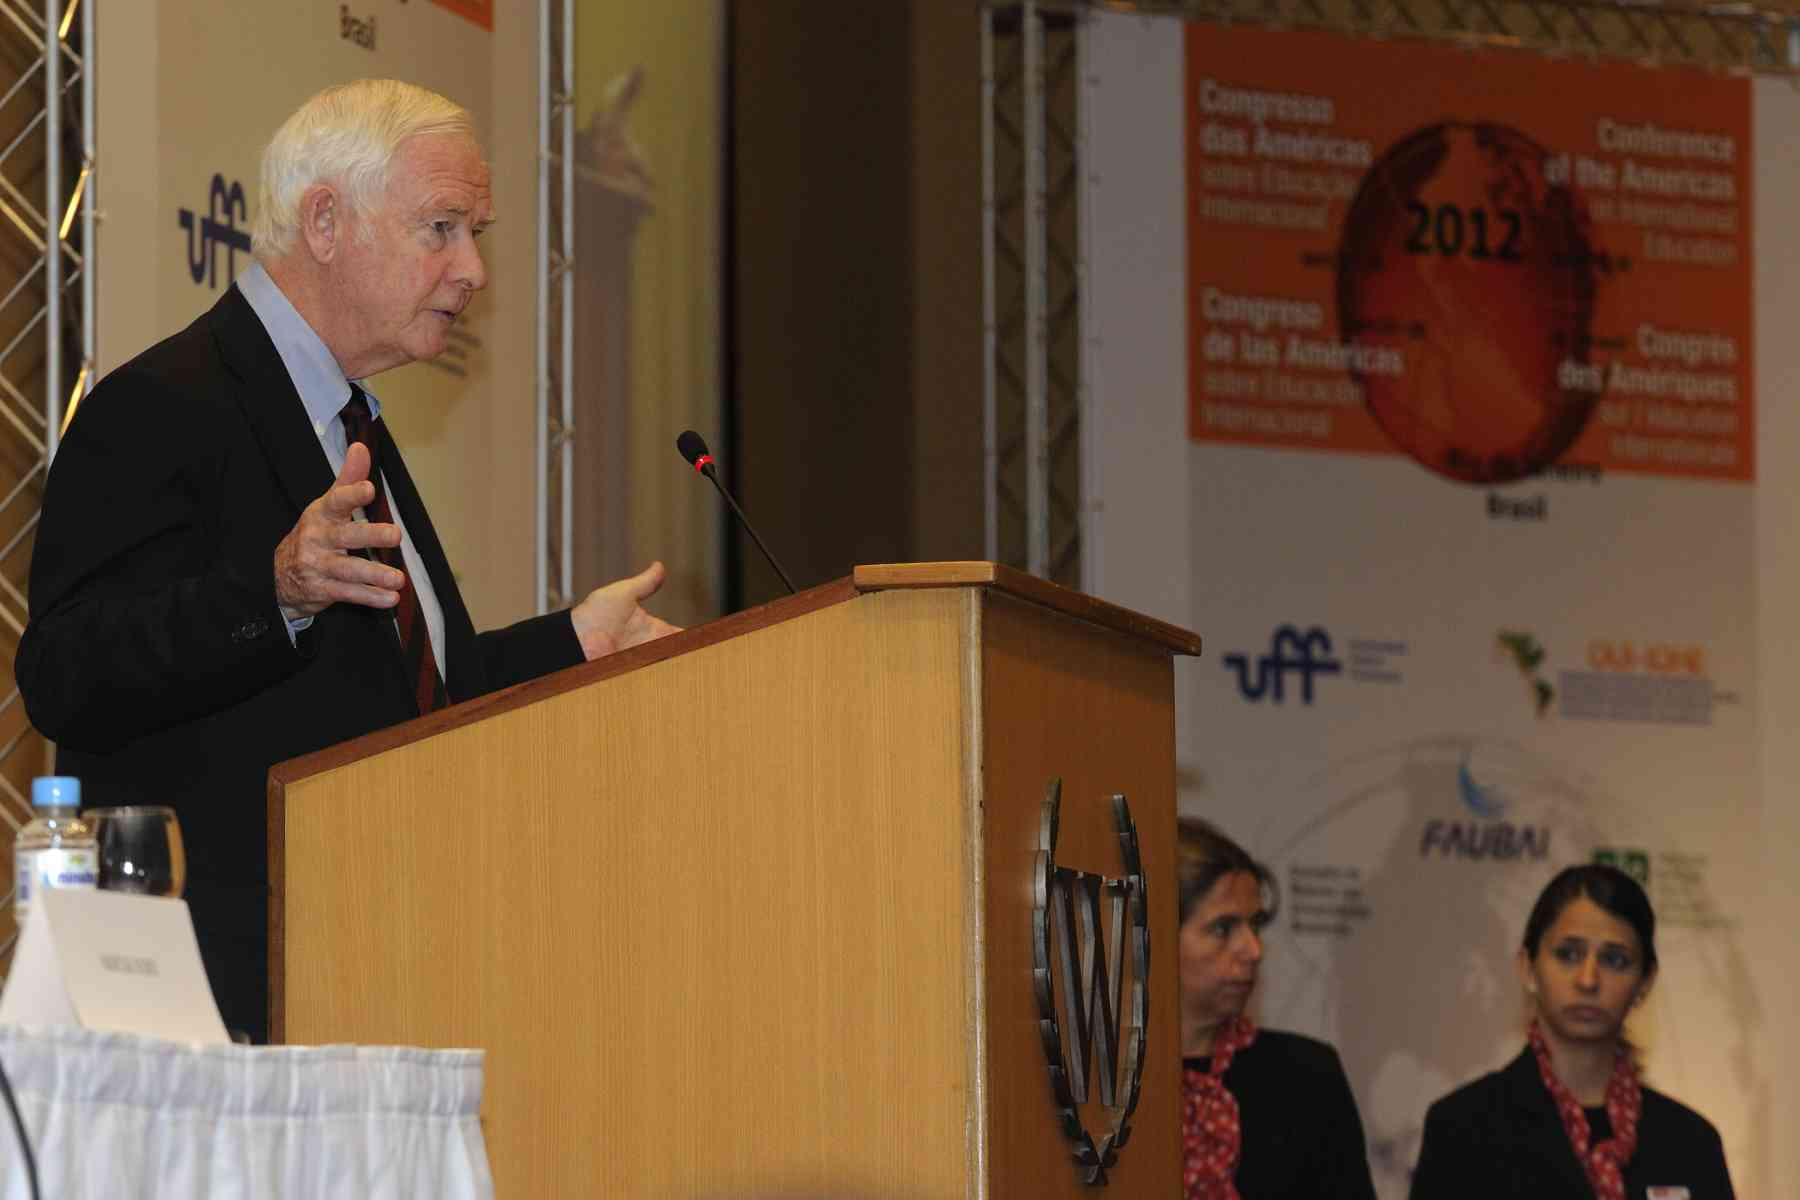 The Governor General delivered the opening address of the Conference of the Americas on International Education (CAIE).